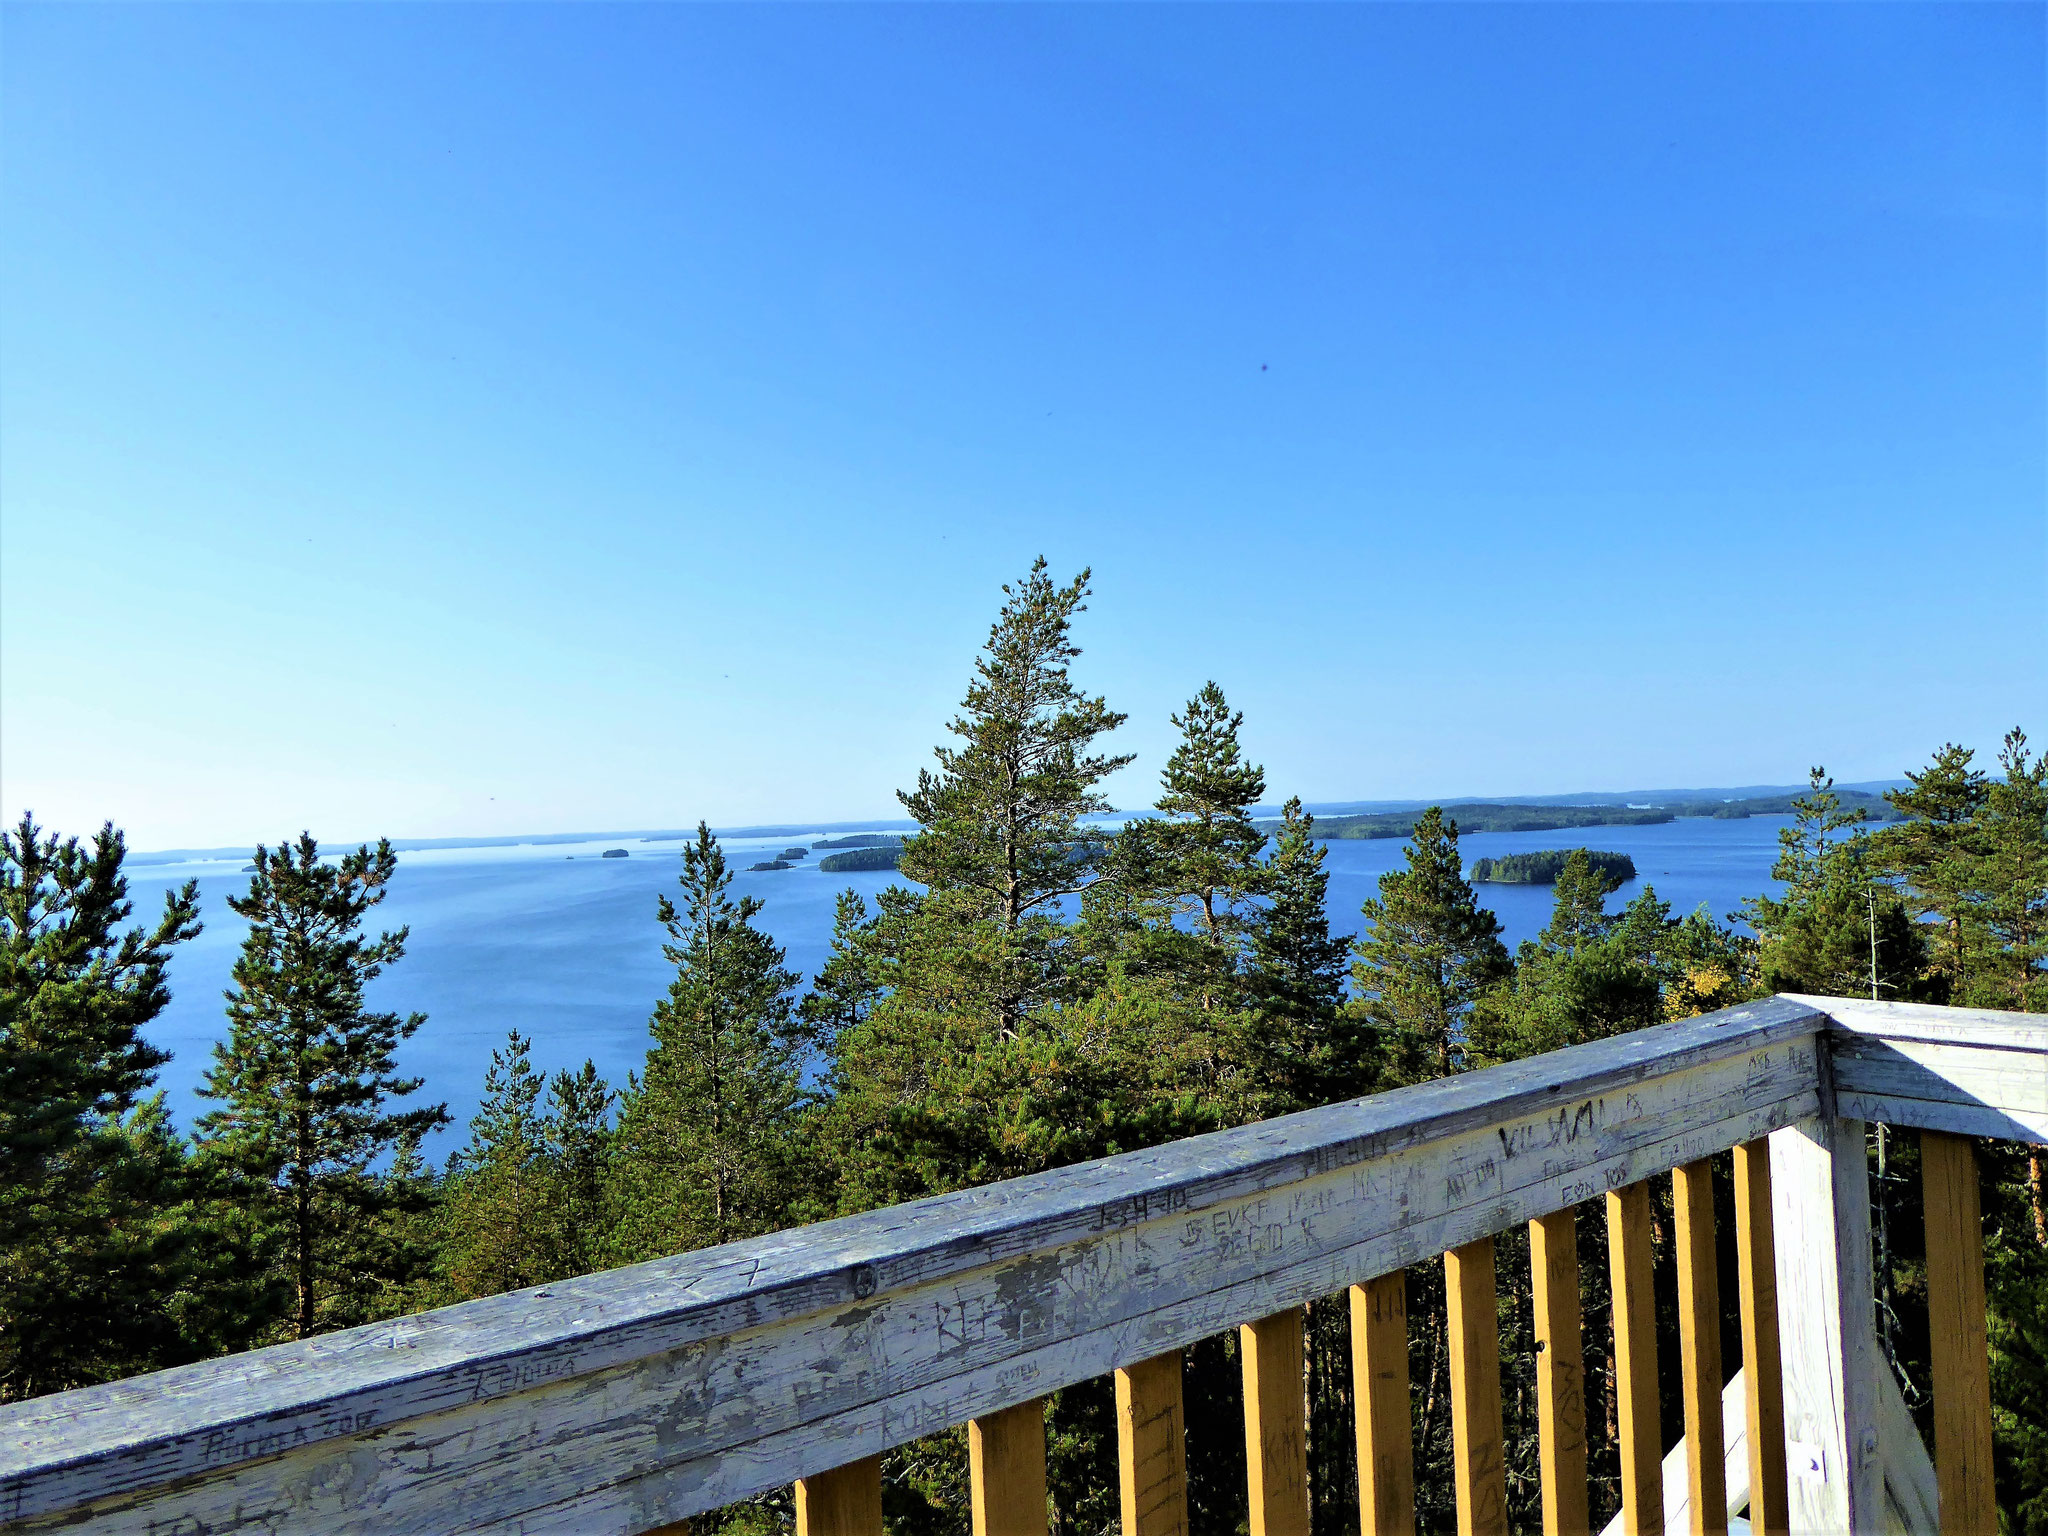 View from the observation tower 1.5 km from the log house. Panorama view included